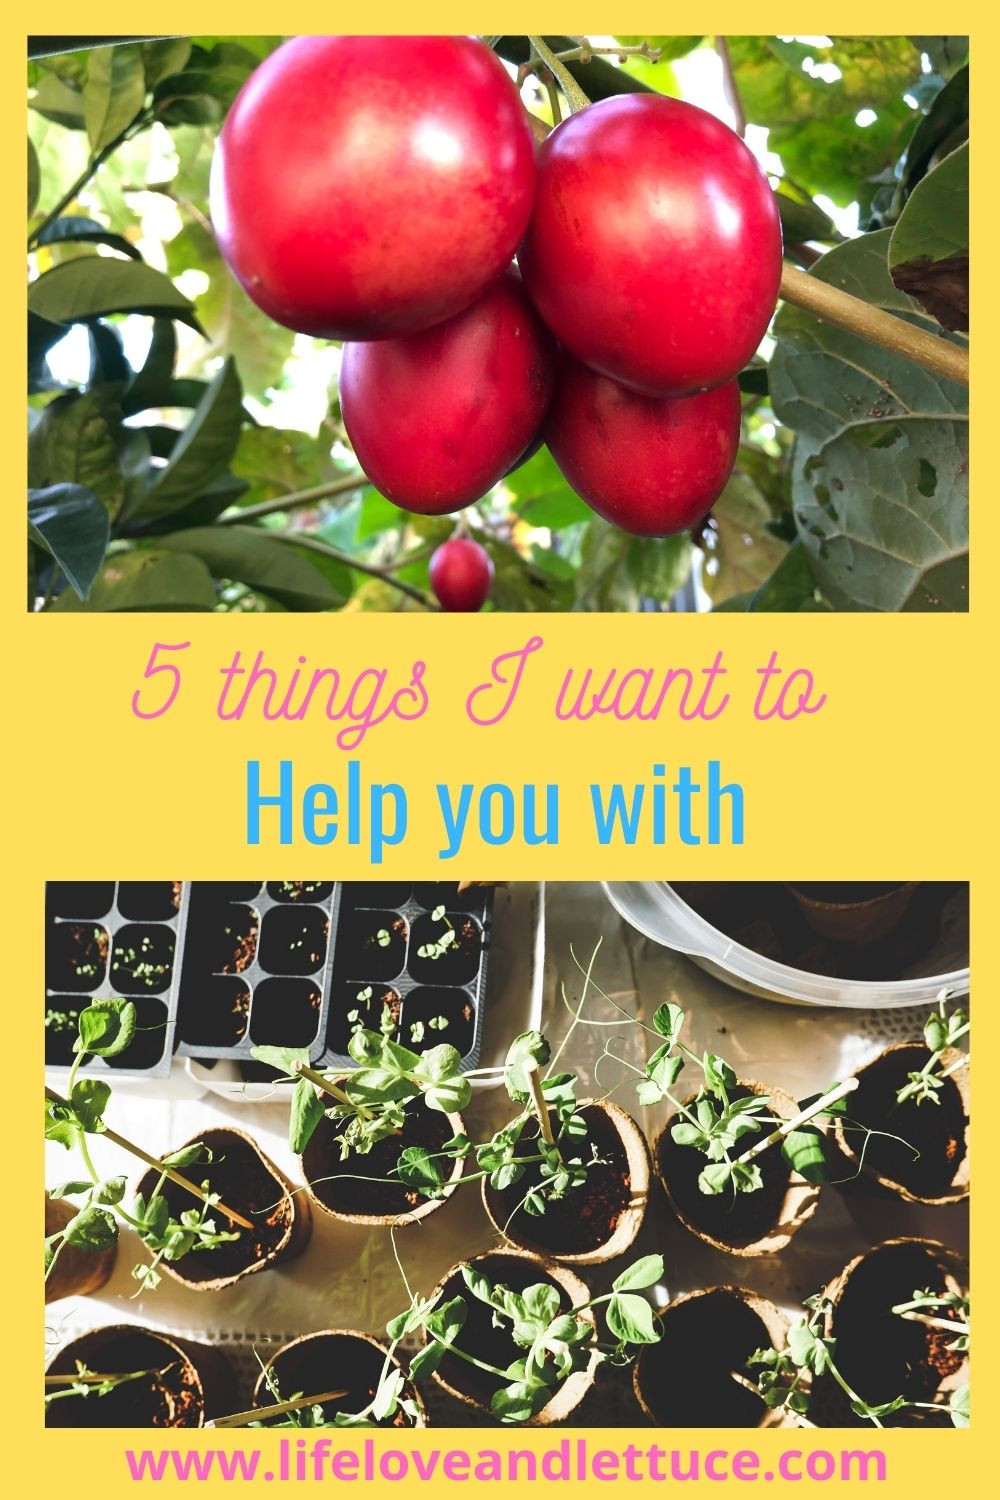 www.lifeloveandlettuce - 5 Things I want to help you with